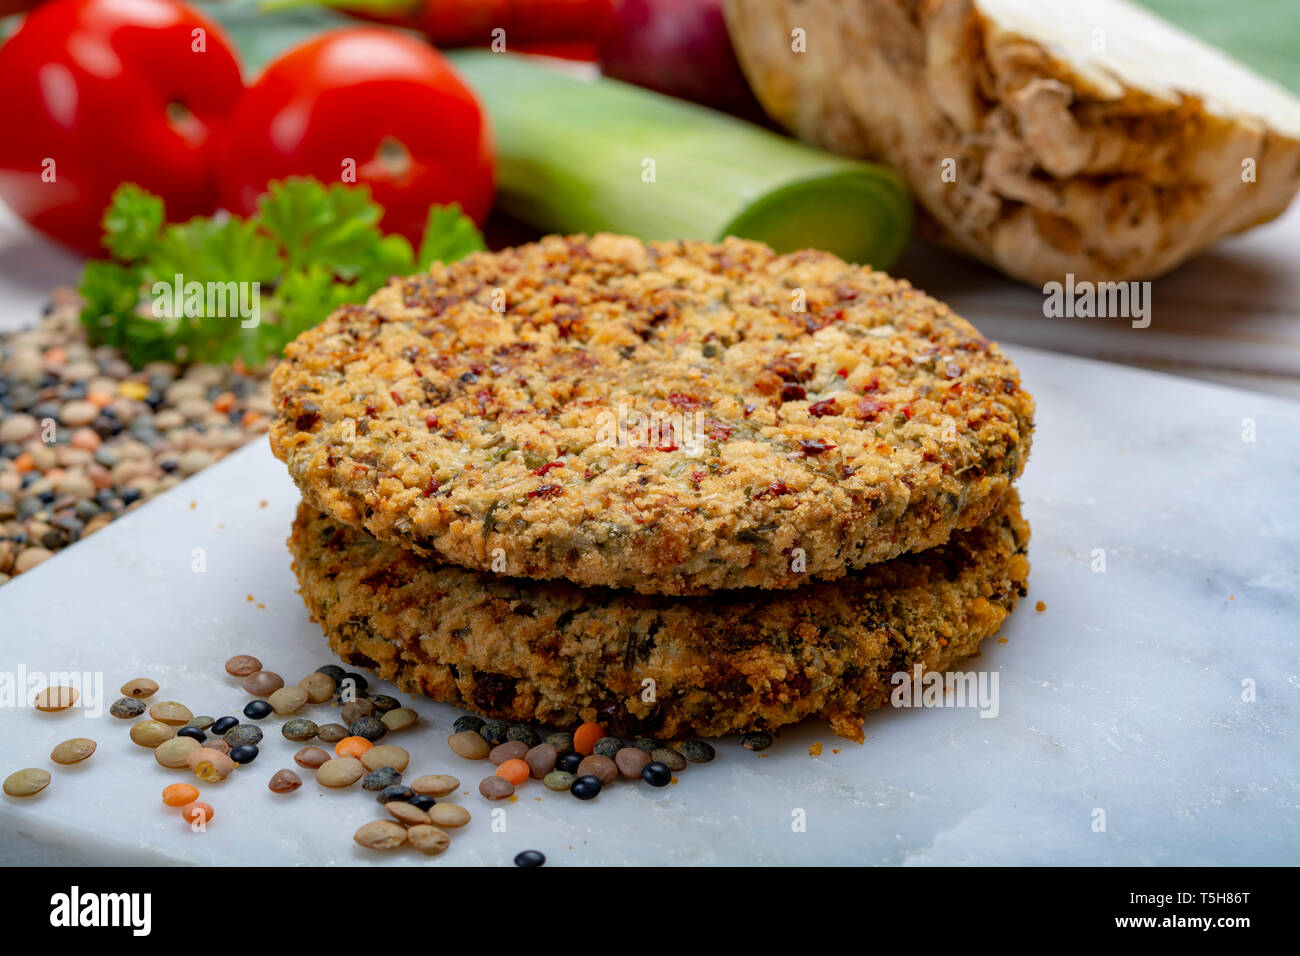 Tasty vegetarian food, raw burgers made from lentils legumes with vegetables ready for cooking, good for vegans Stock Photo